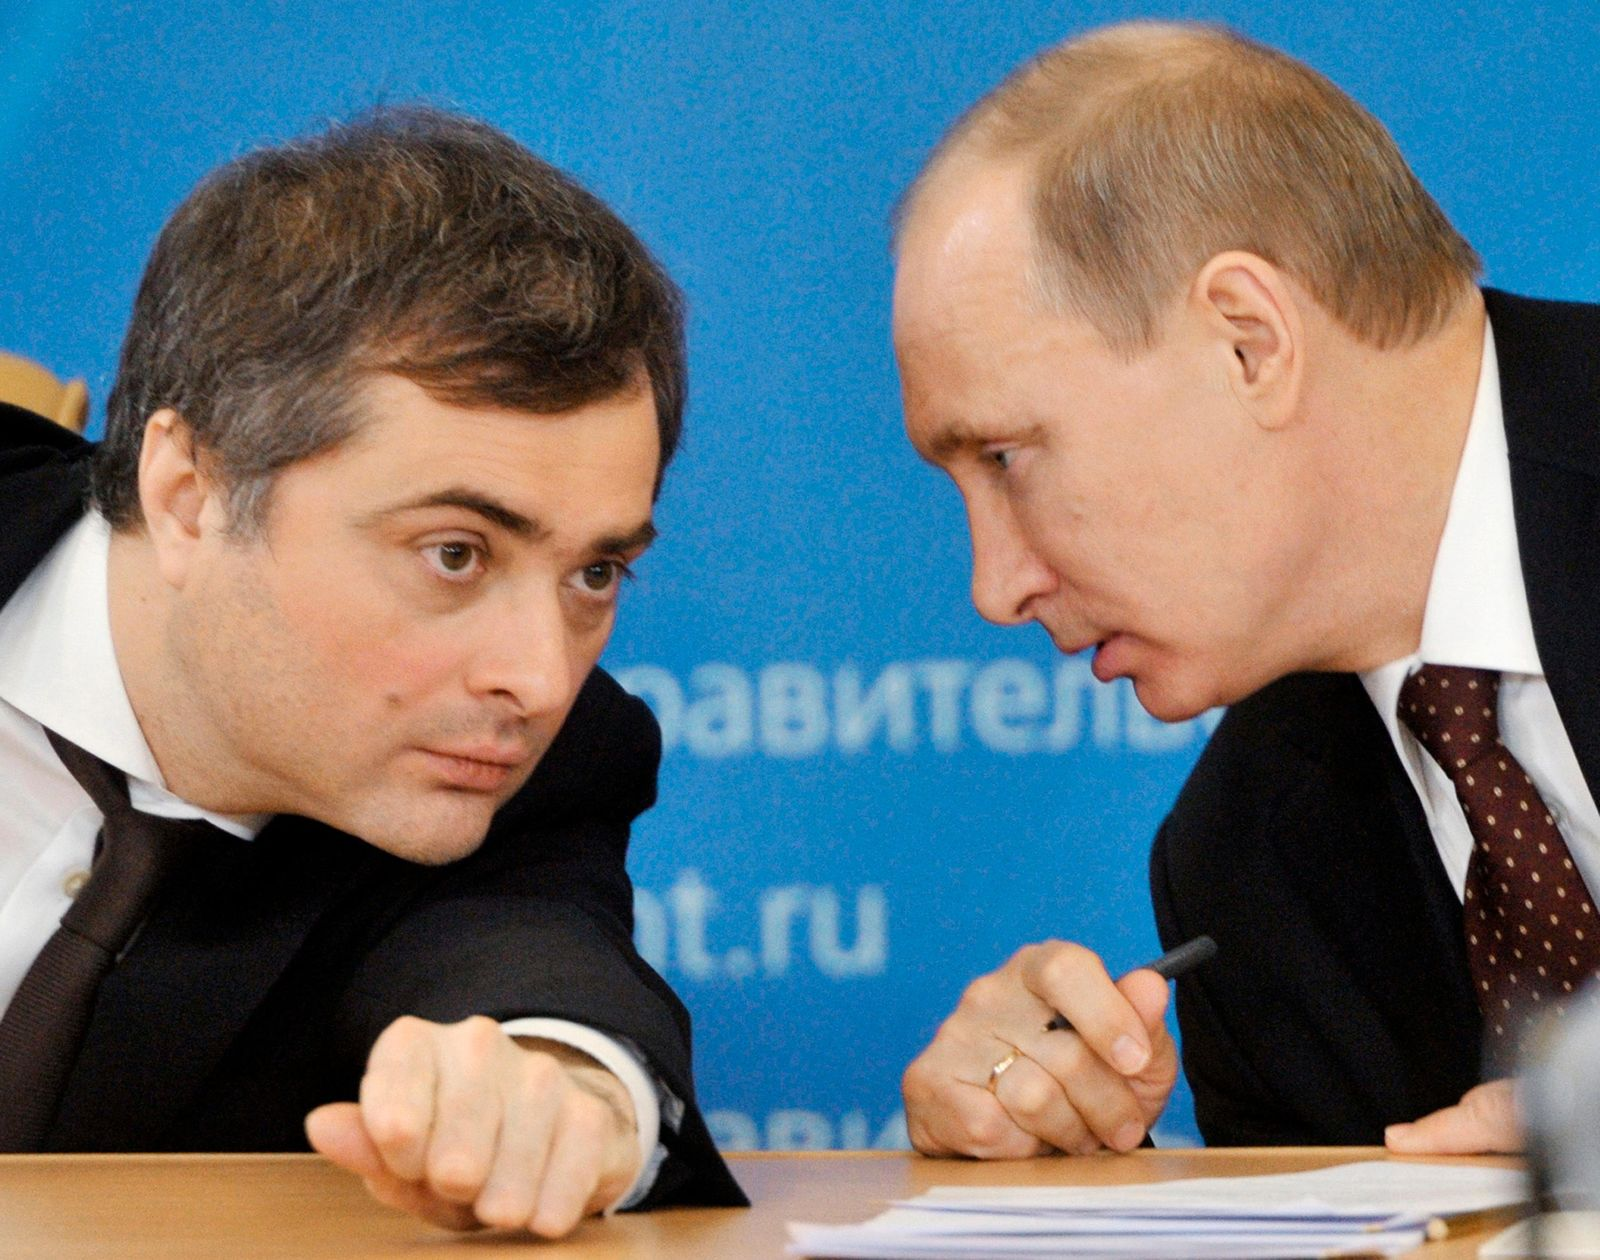 FILE In this file photo taken on Tuesday, March 18, 2014, Russian Prime Minister Vladimir Putin, right, speaks to Vladislav Surkov, deputy prime minister in charge of economic modernization, during a visit in Kurgan, Russia (Alexei Nikolsky, Sputnik, Kremlin Pool Photo via AP, File)